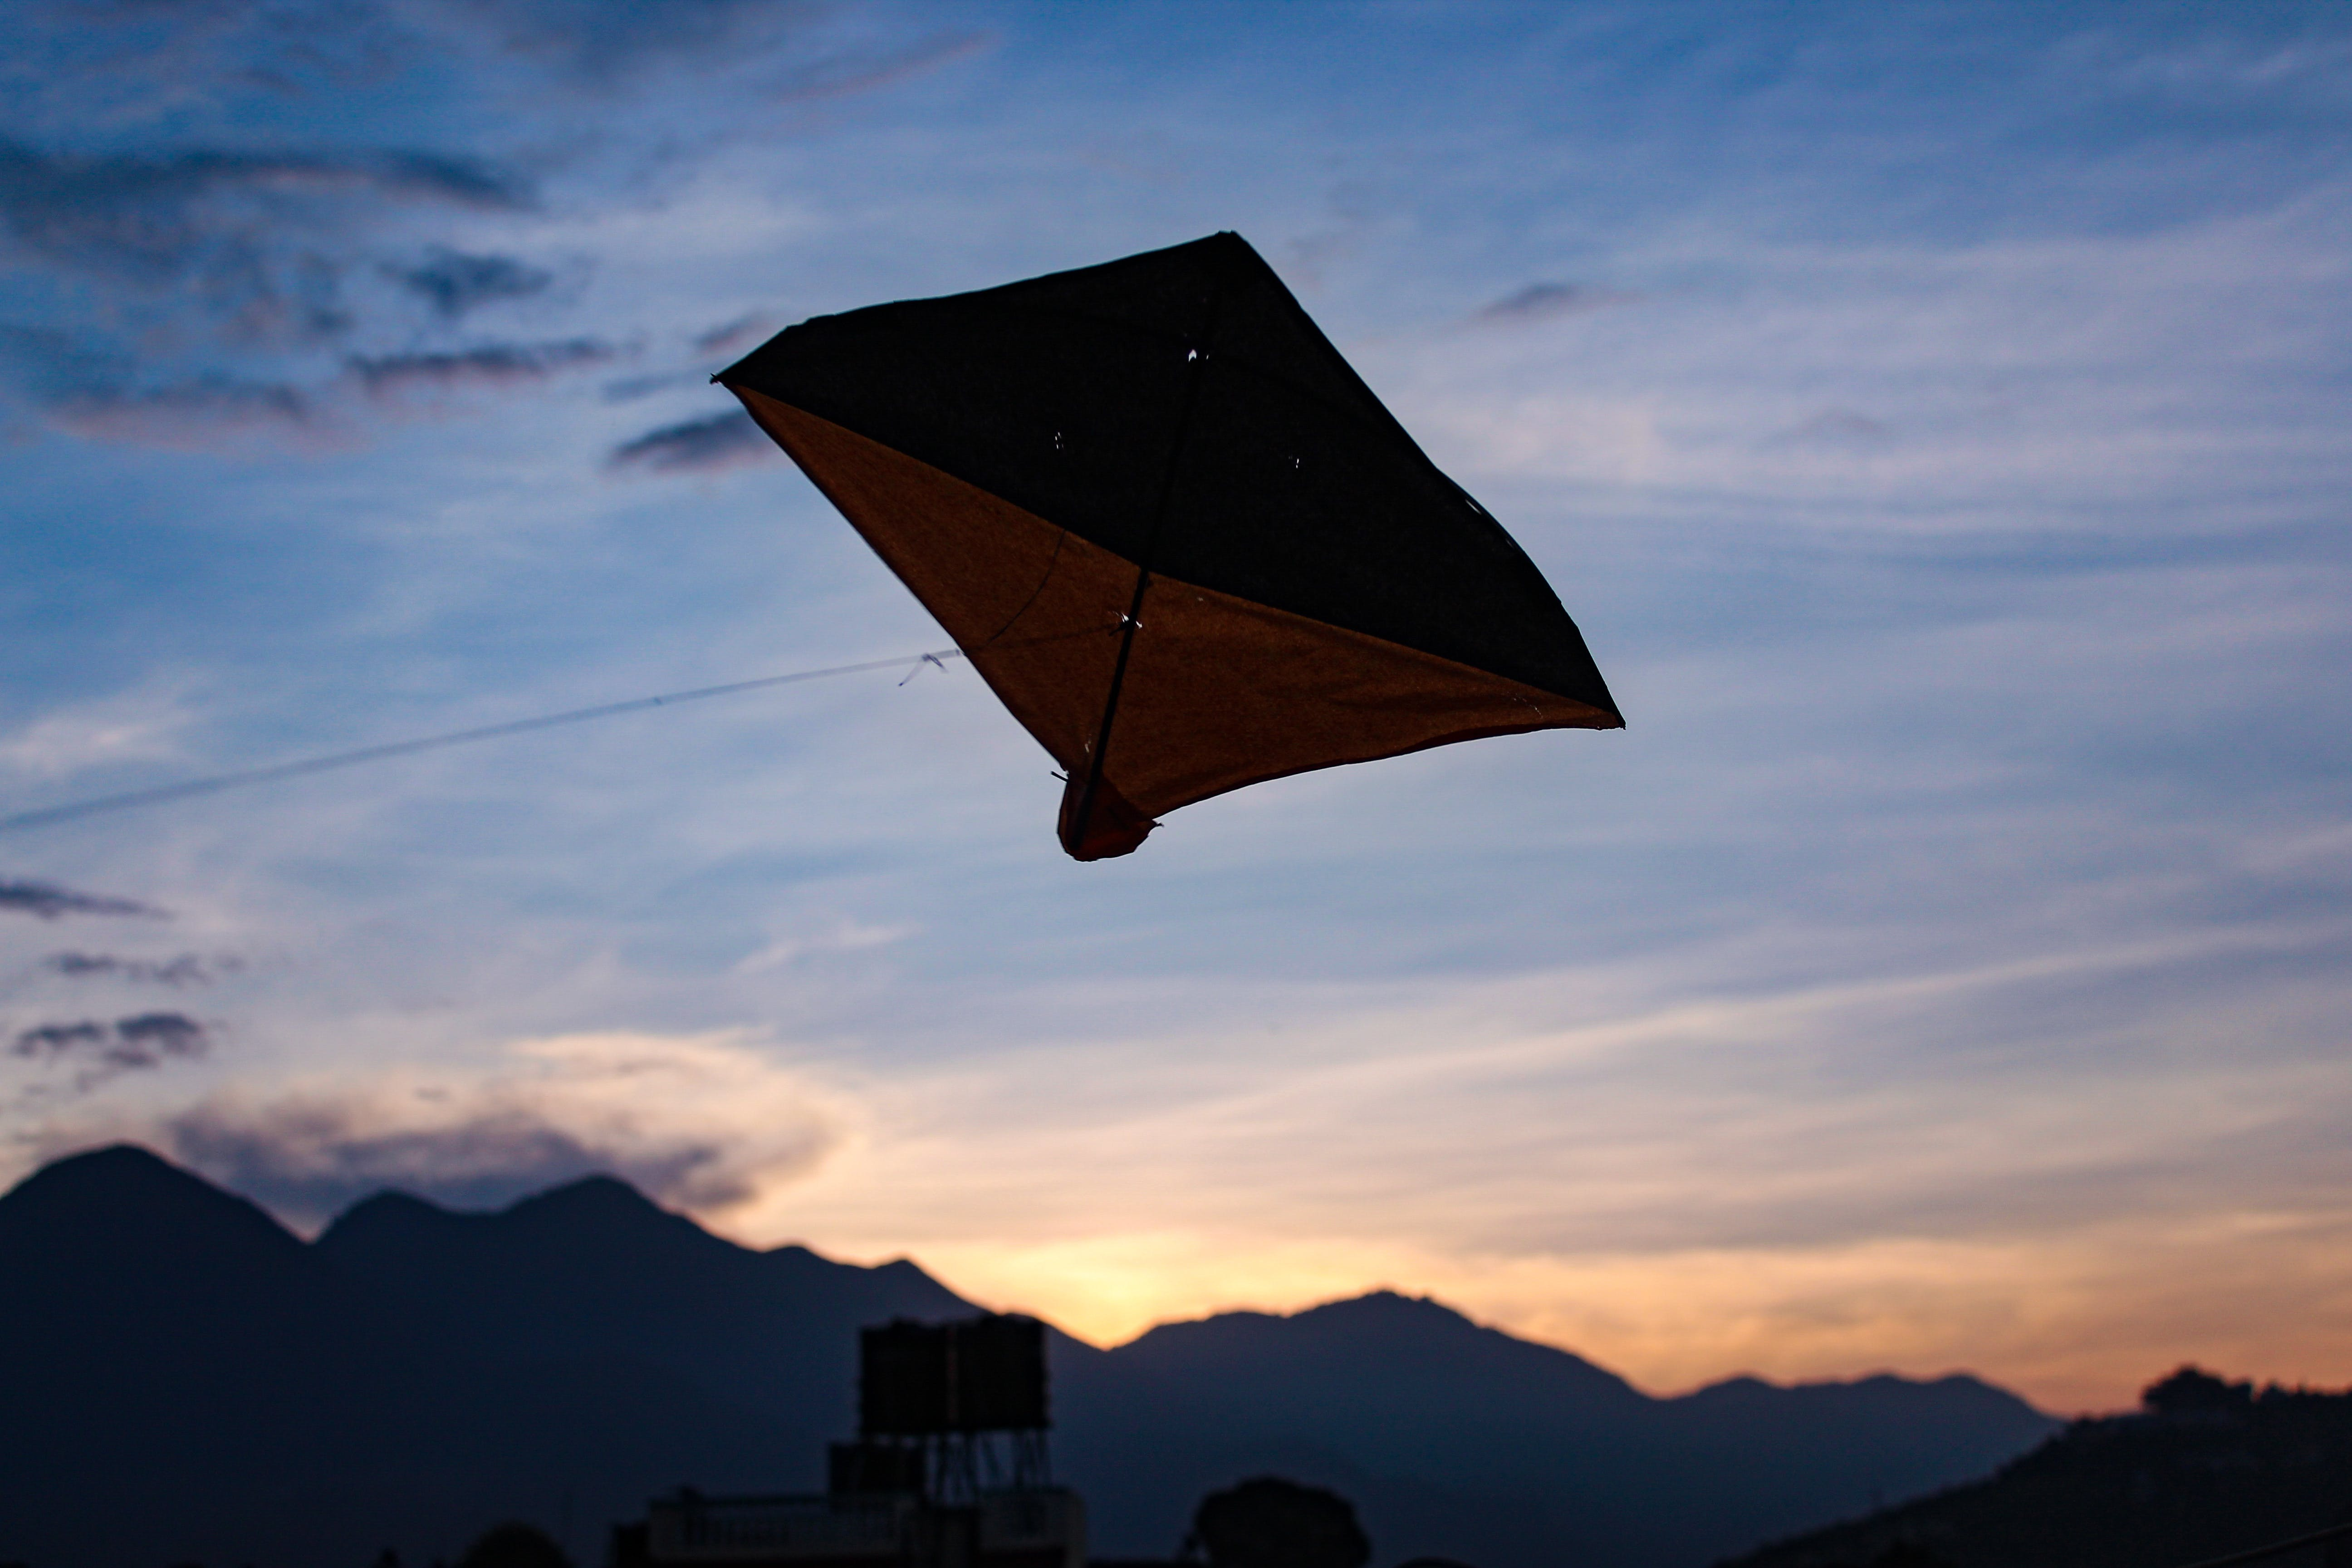 Free stock photo of #clouds, #flying, #Hills, #kite